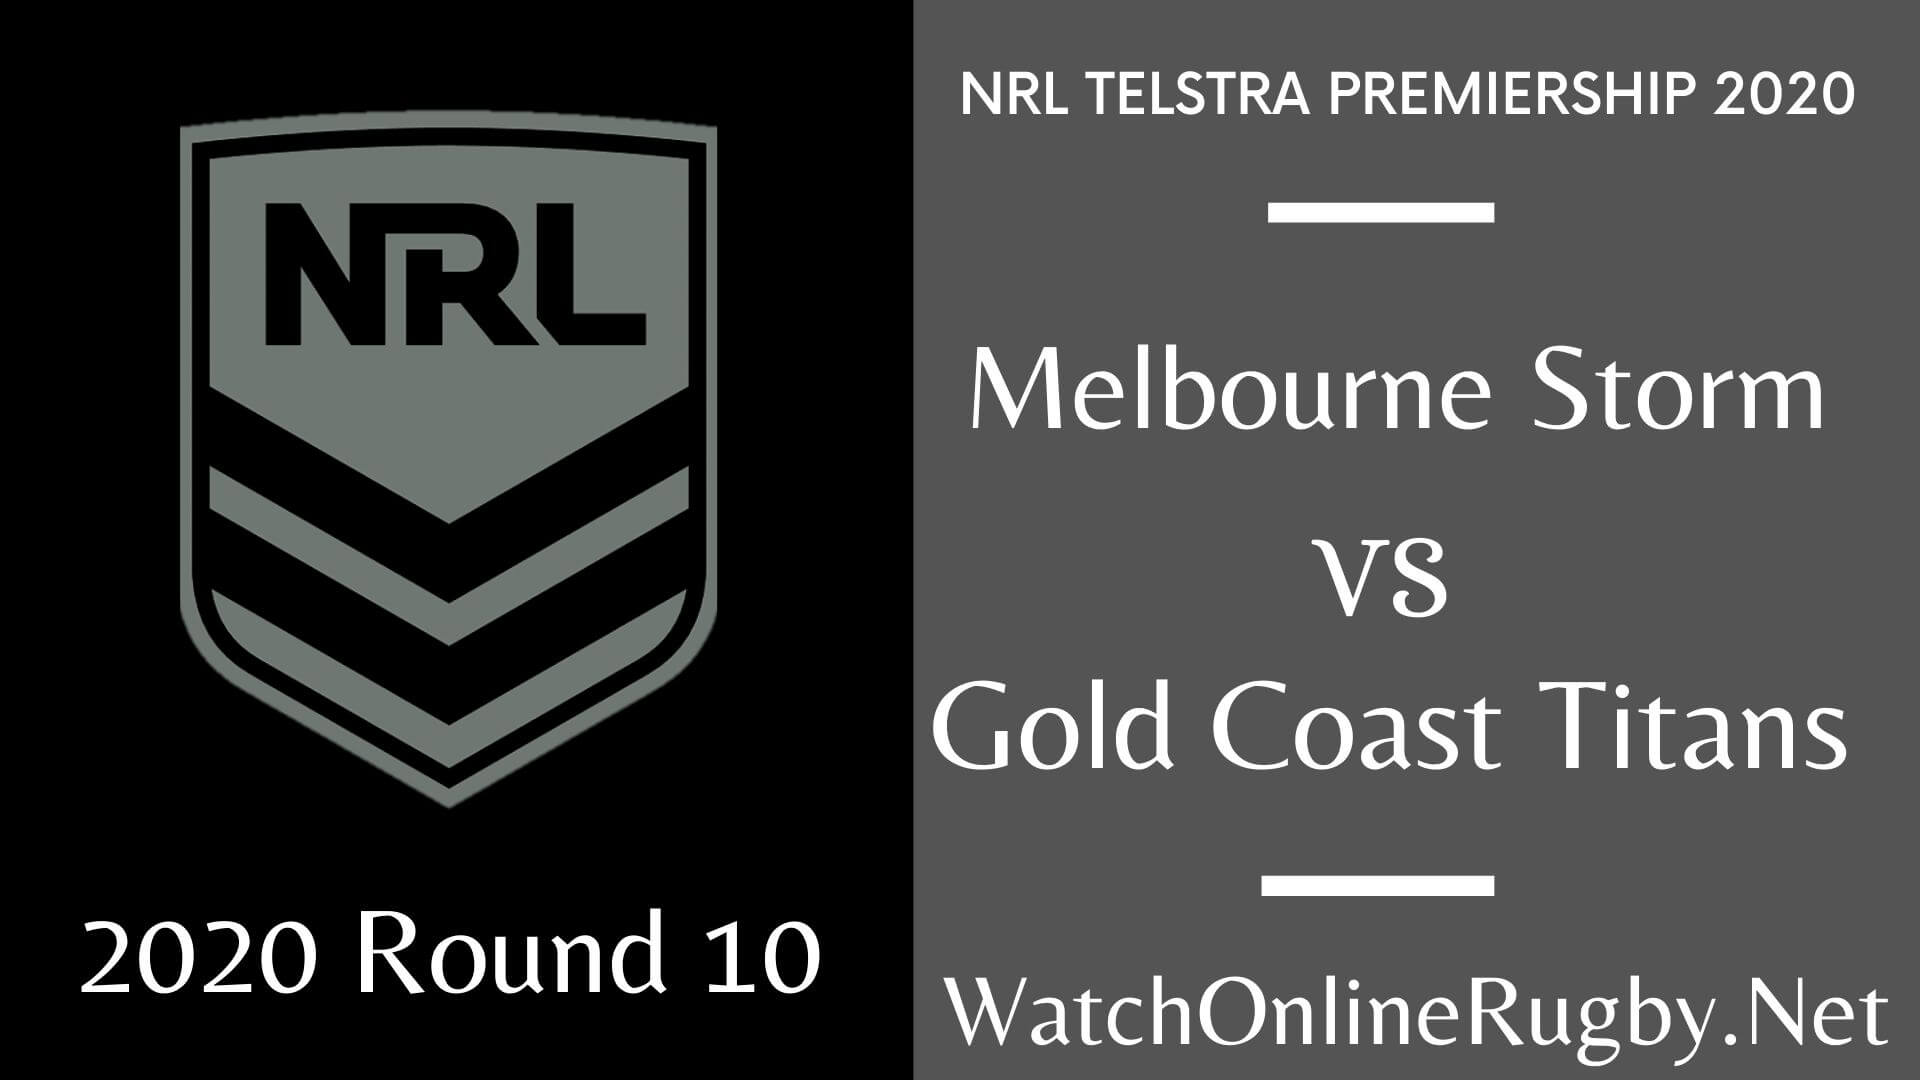 Storm Vs Titans Highlights 2020 Round 10 Nrl Rugby